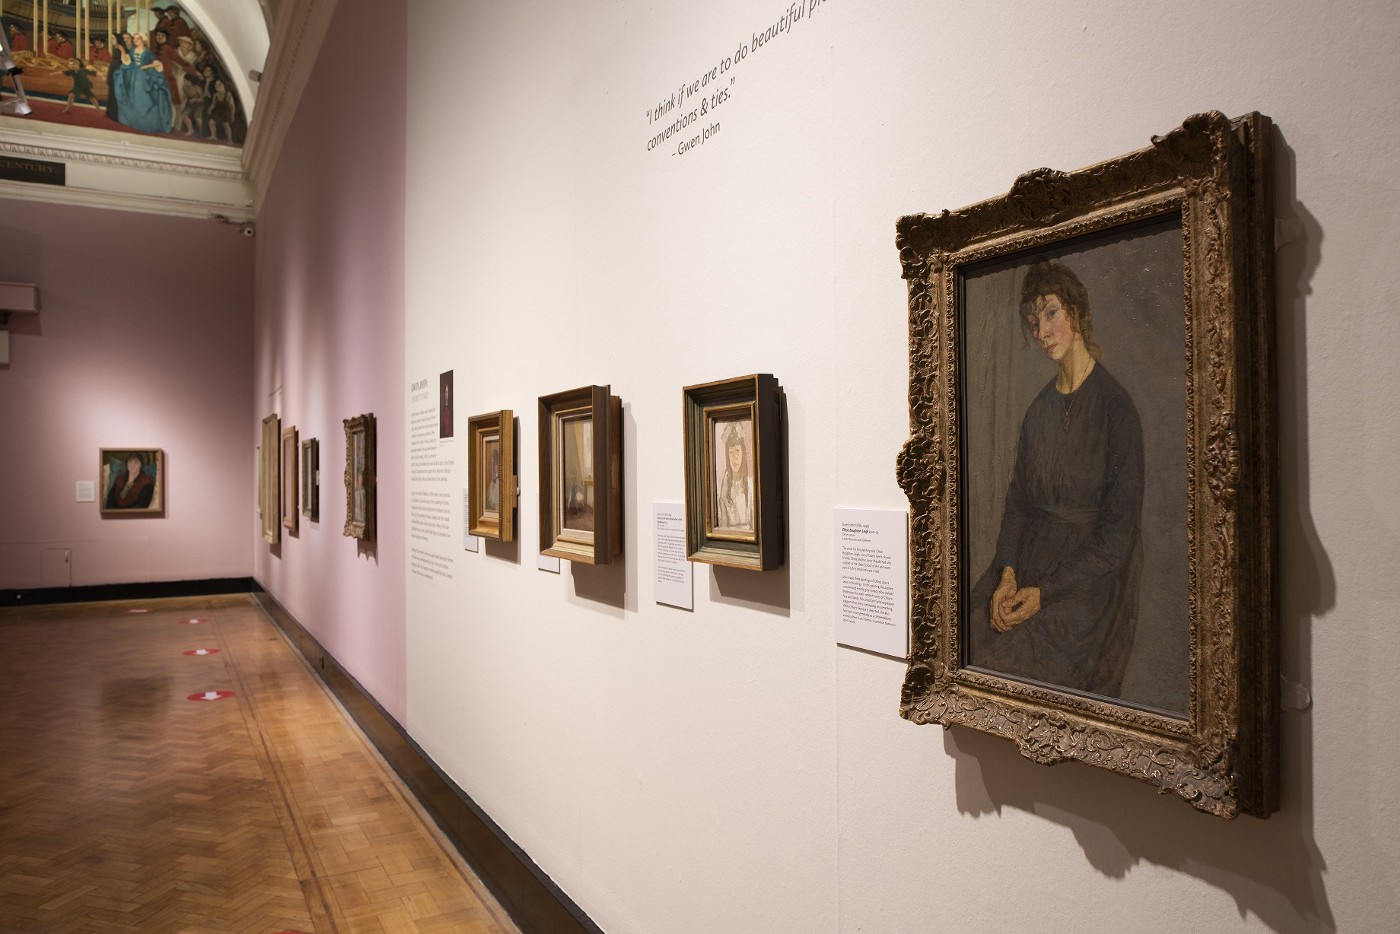 A photo of a gallery wall with gold frames hung on it, with a painting of a sitting woman wearing a black dress